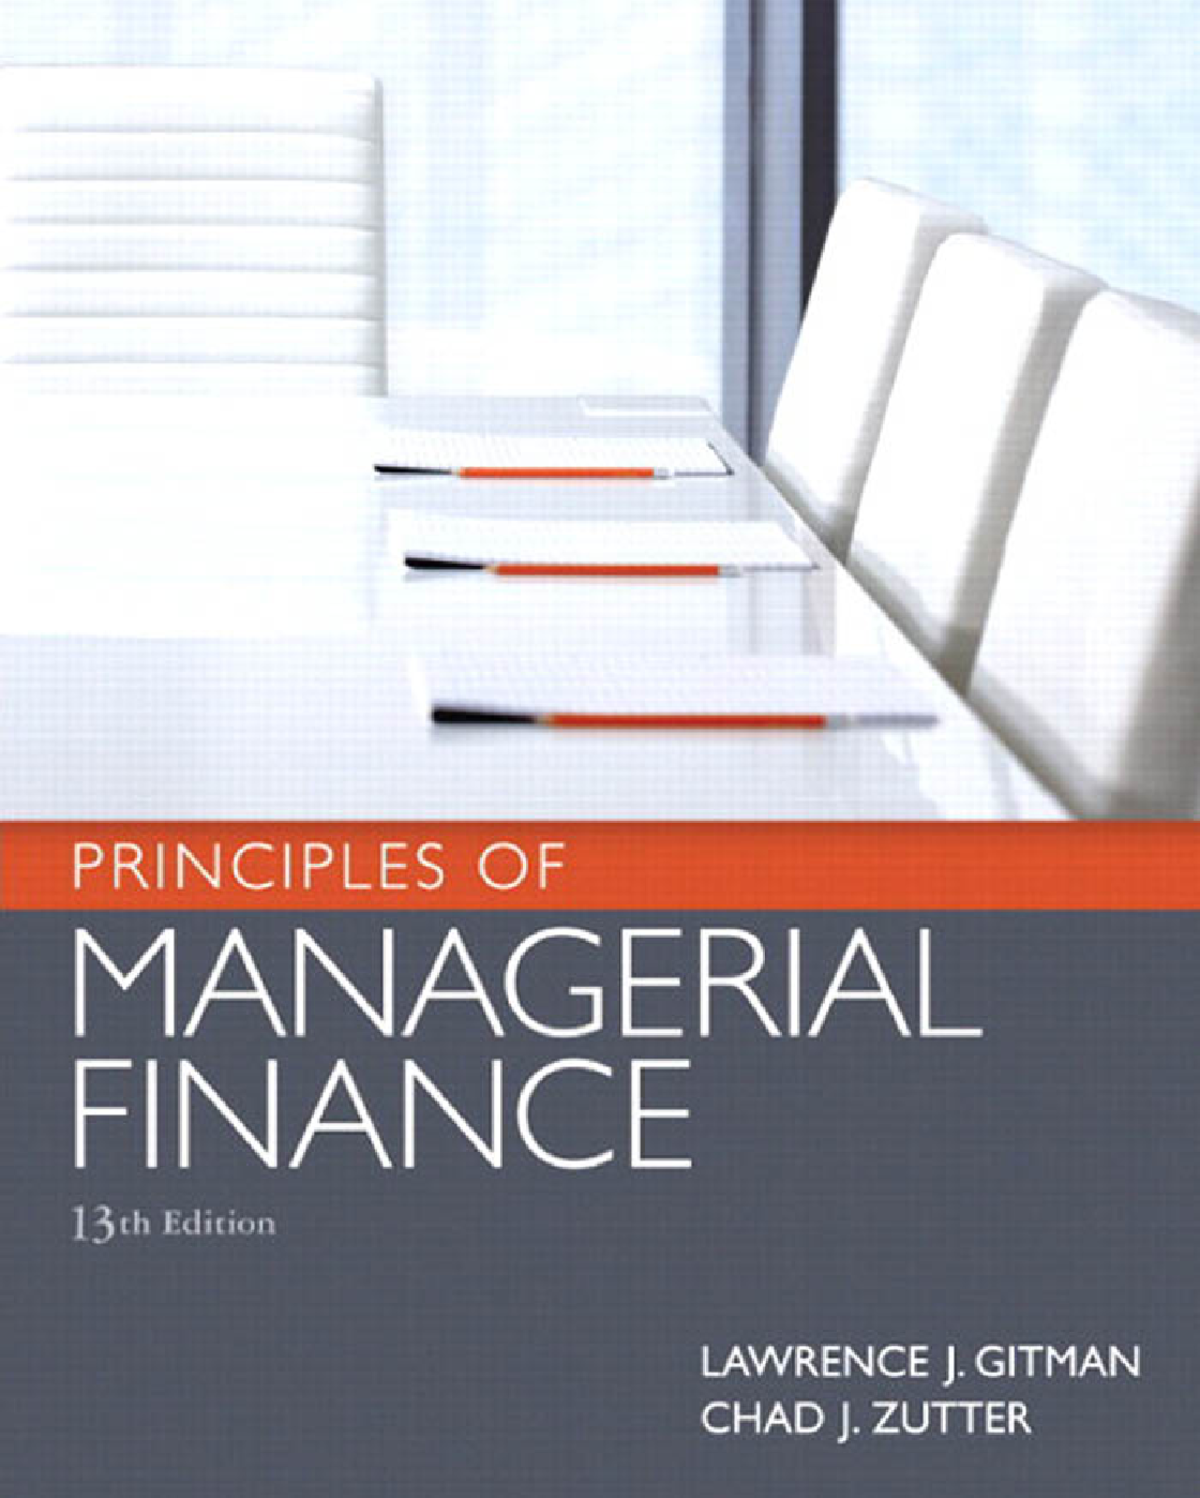 principles of managerial finance 13th edition chapter 1 solutions